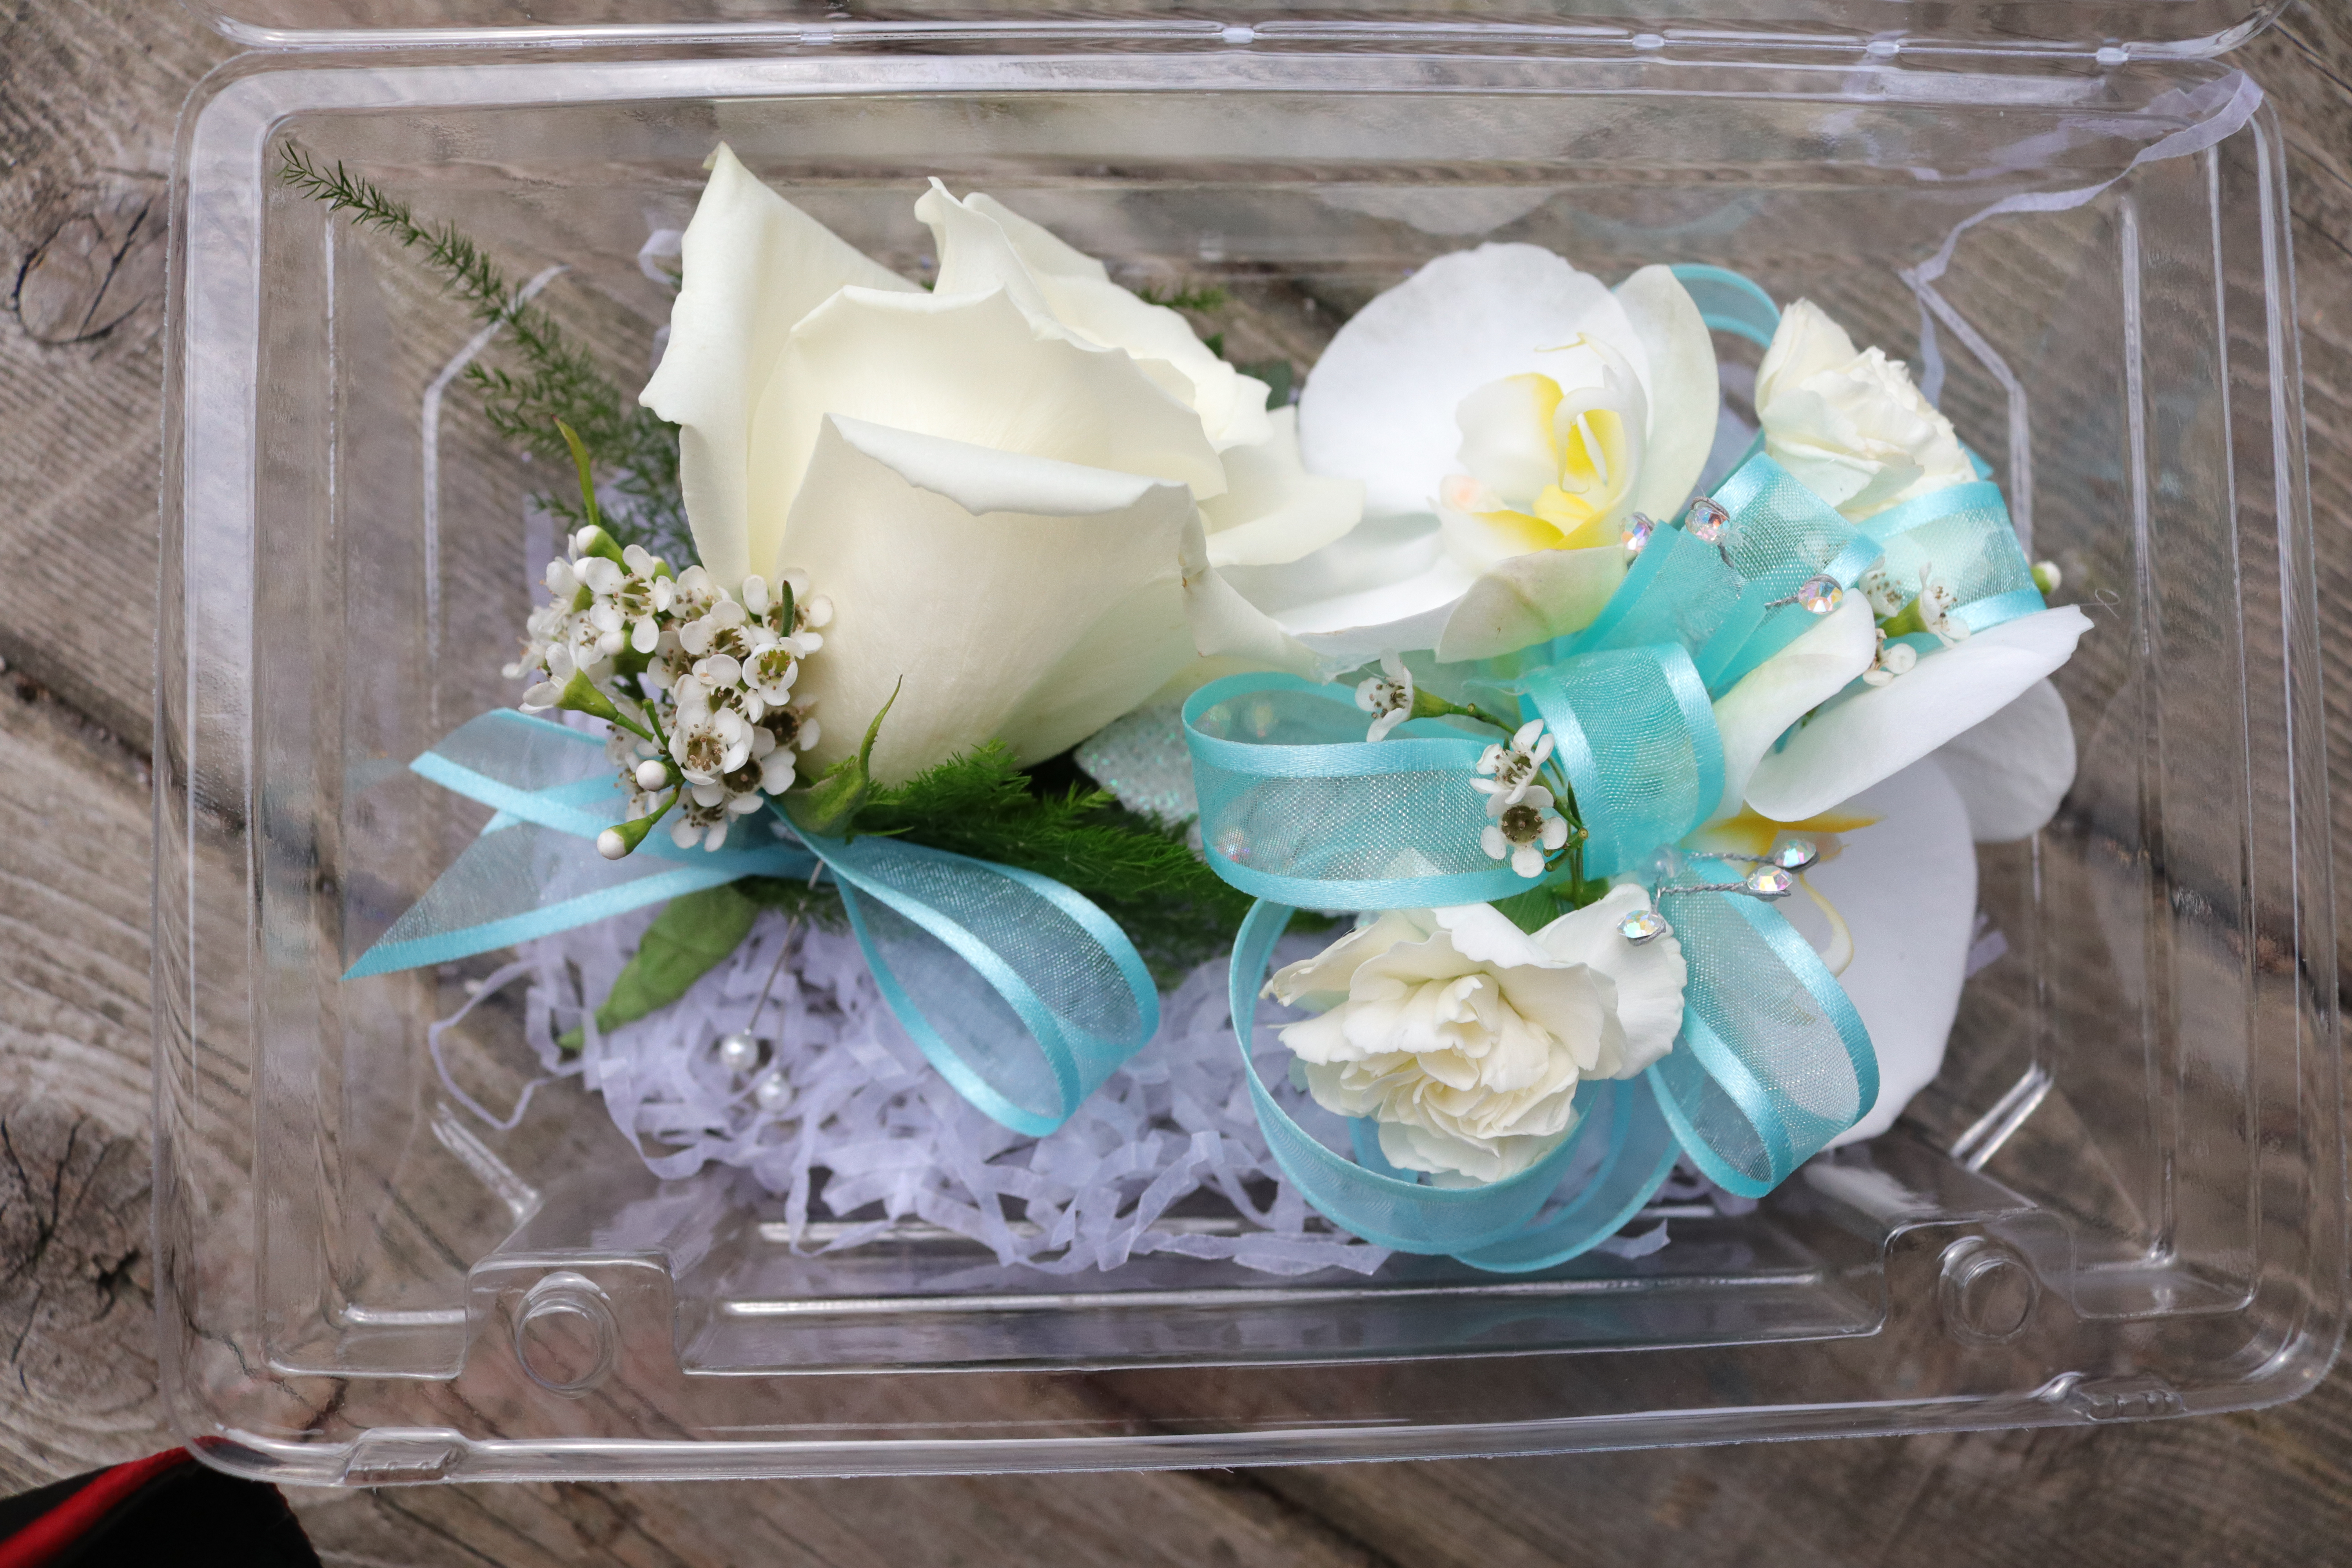 Combo with orchid corsage